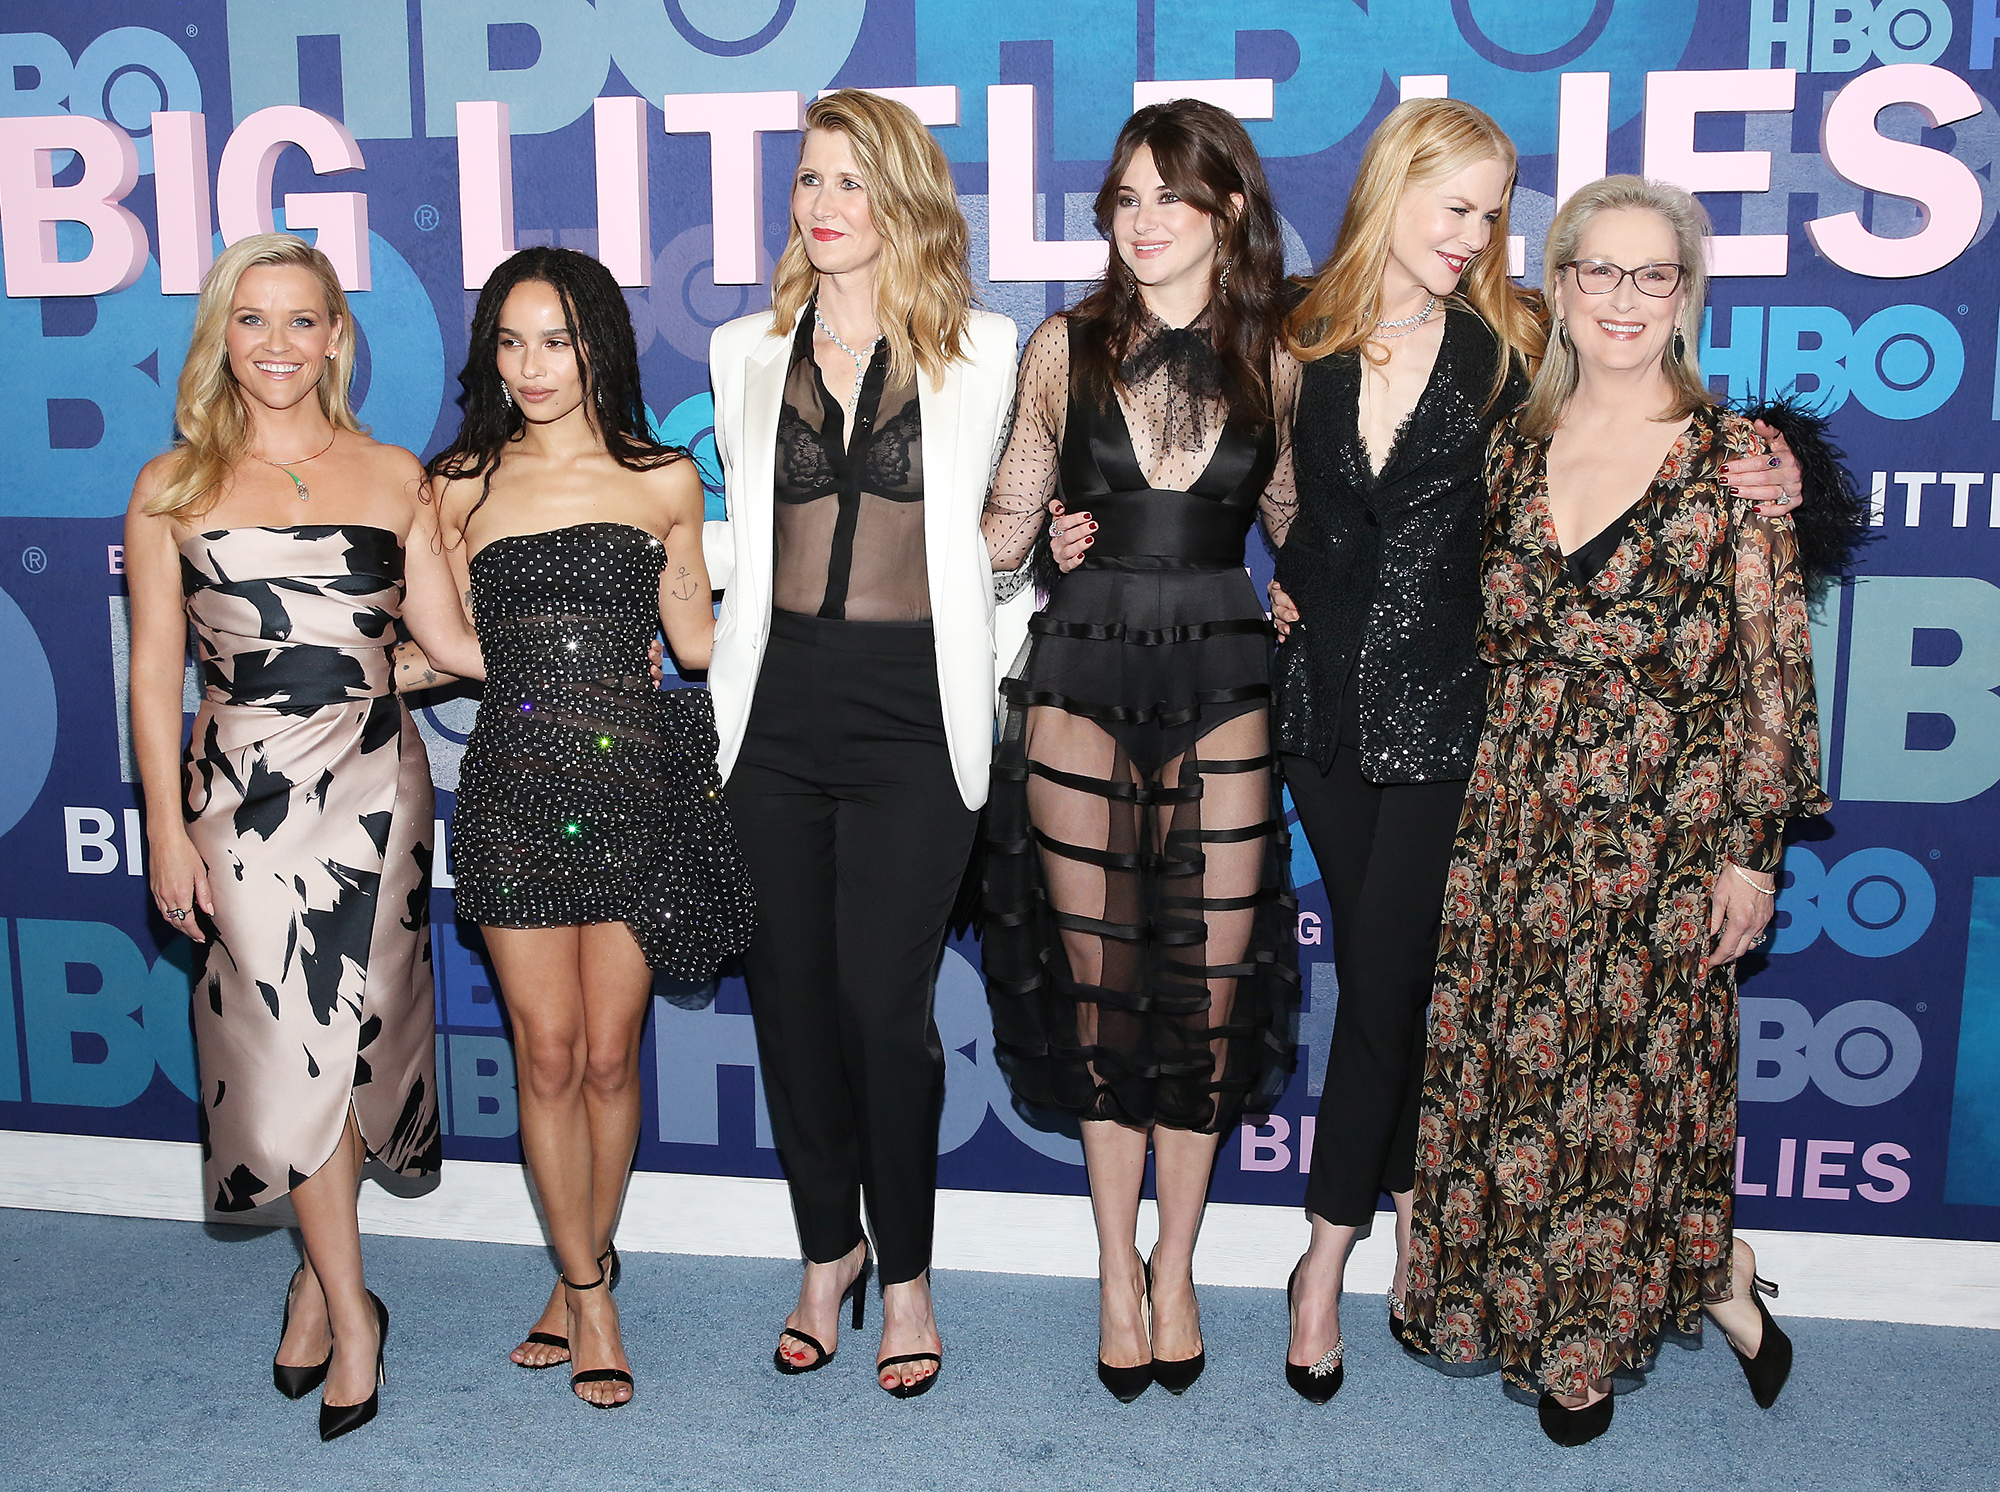 Meryl Streep Big Little Lies Without Reading Script - Reese Witherspoon, Zoe Kravitz, Laura Dern, Shailene Woodley, Nicole Kidman and Meryl Streep.